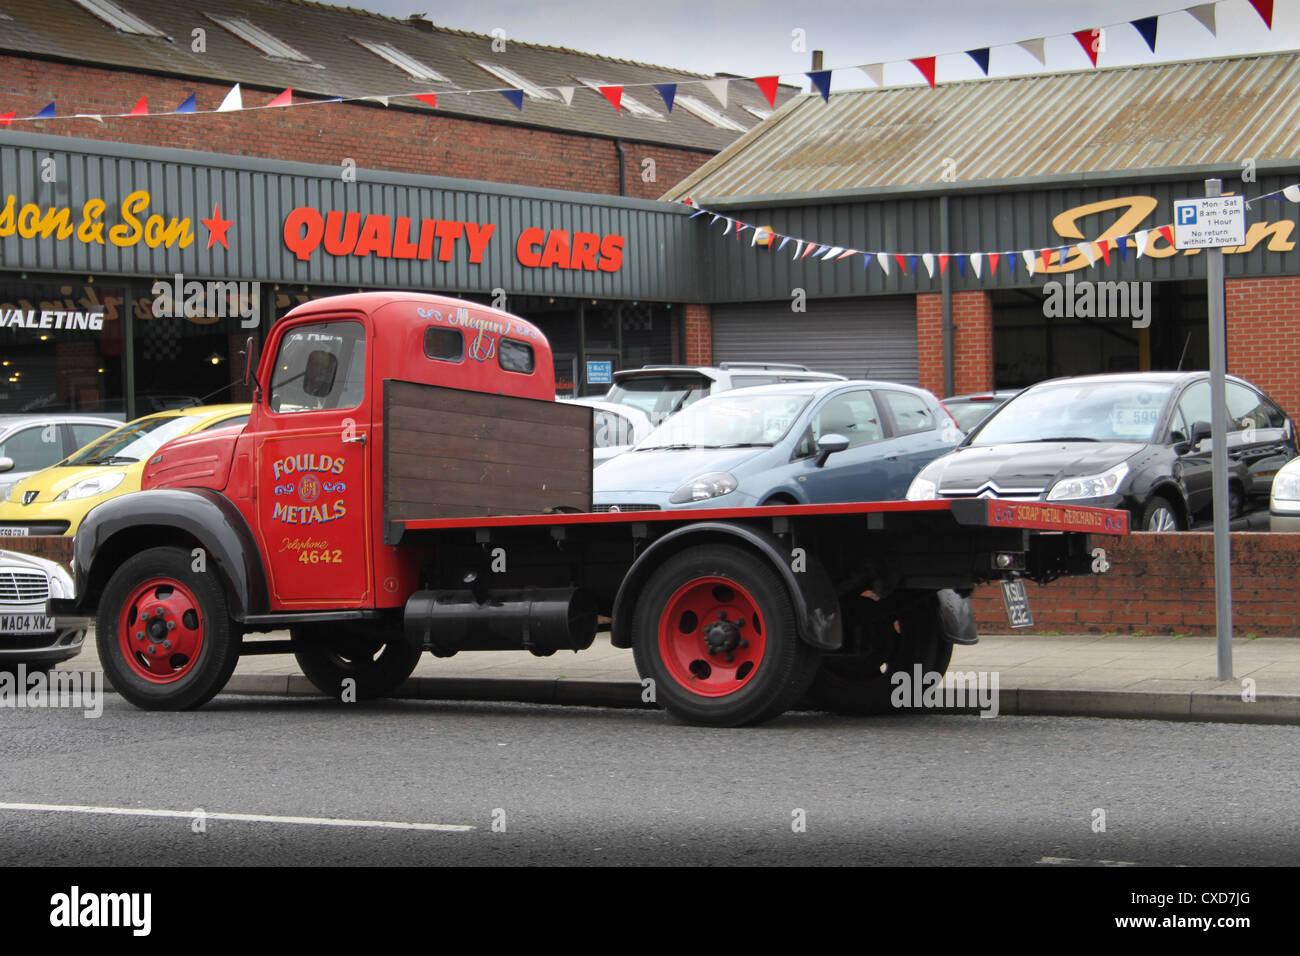 Truck Sales Stock Photos & Truck Sales Stock Images - Alamy